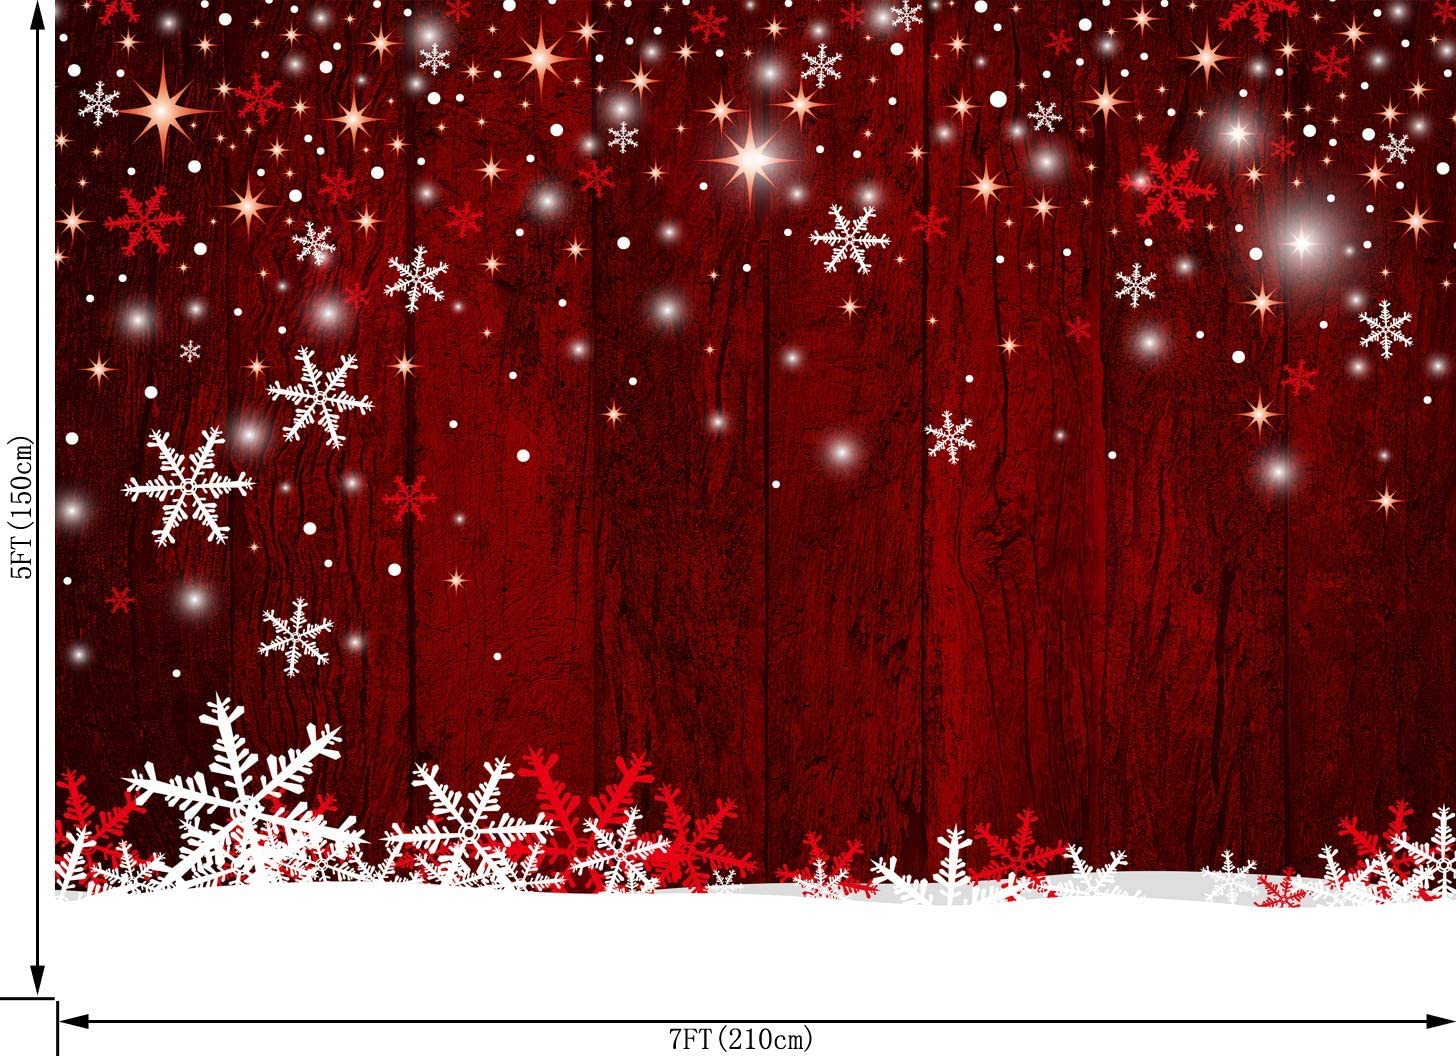 GoEoo 10X8FT Christmas Themed Fireplace Vinyl Photography Backdrop Photo Background Studio Prop CEM07C